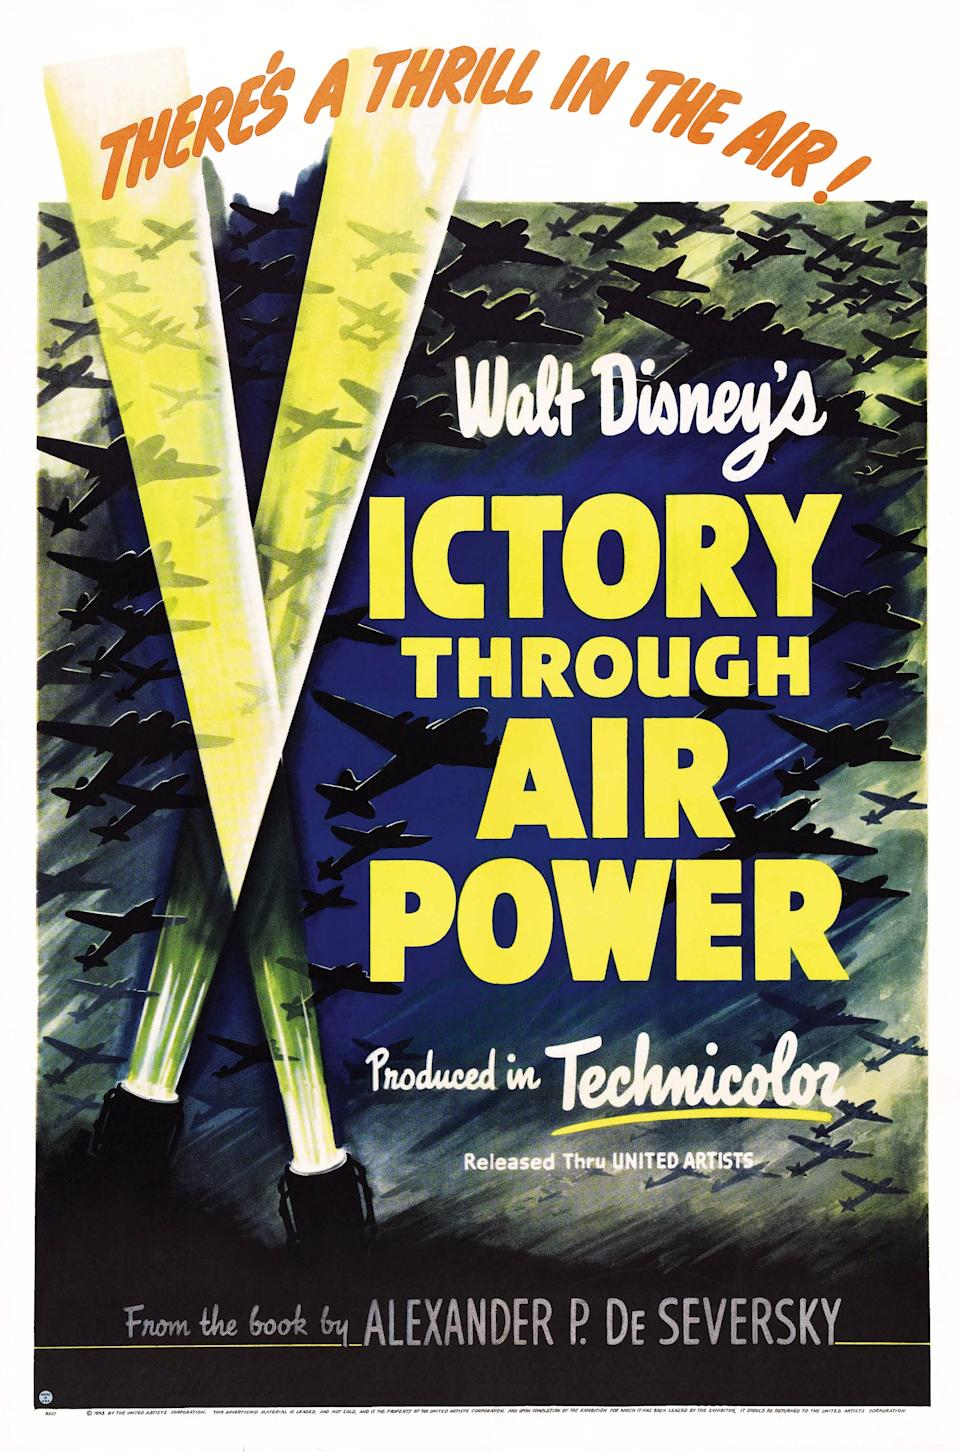 Victory Through Air Power, poster, US poster art, 1943. (Photo by LMPC via Getty Images)